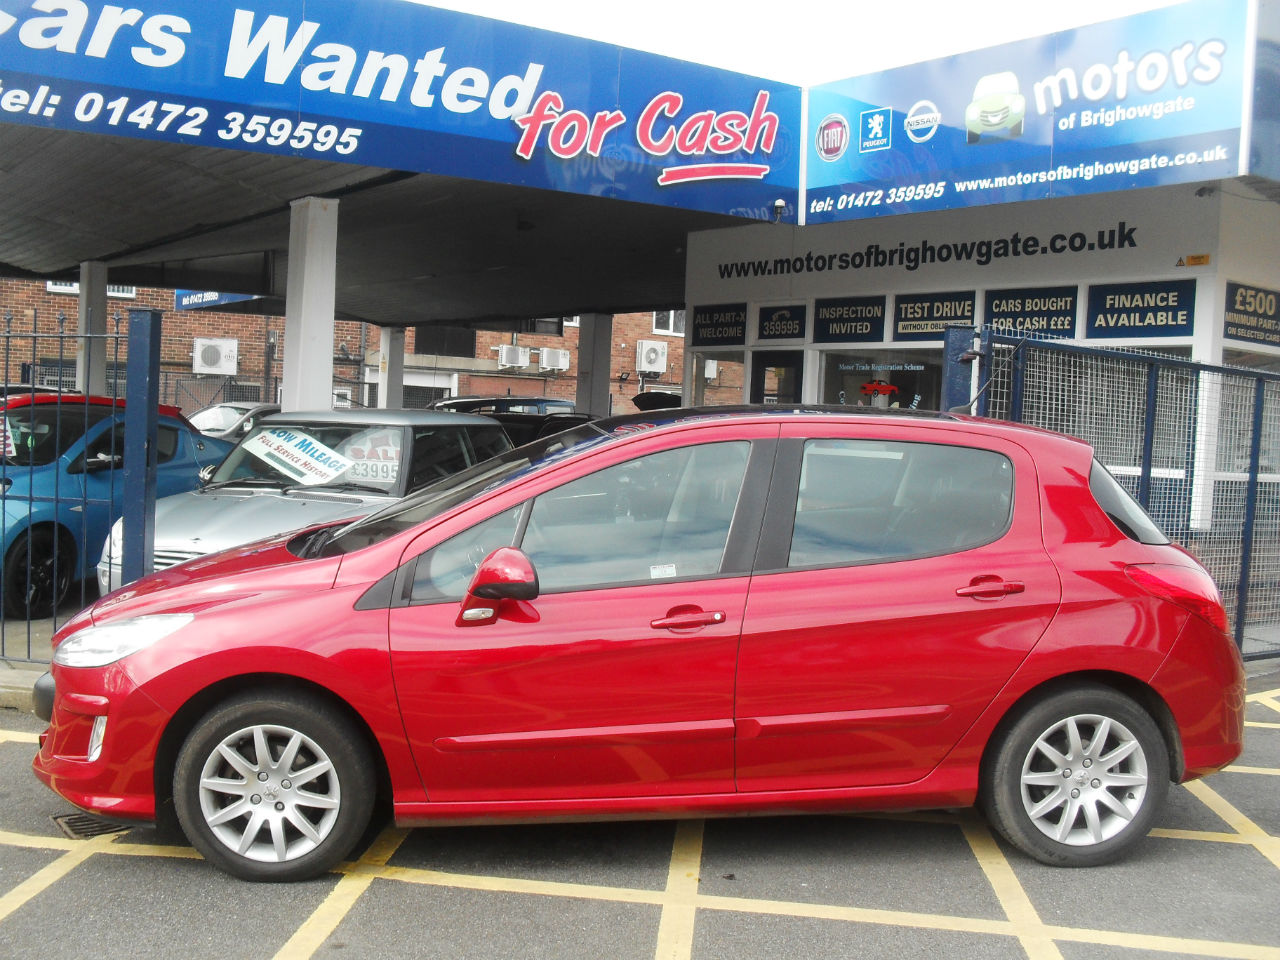 Peugeot 308 1.6 THP SE 5dr Auto Hatchback Petrol Red at Motors of Brighowgate Grimsby